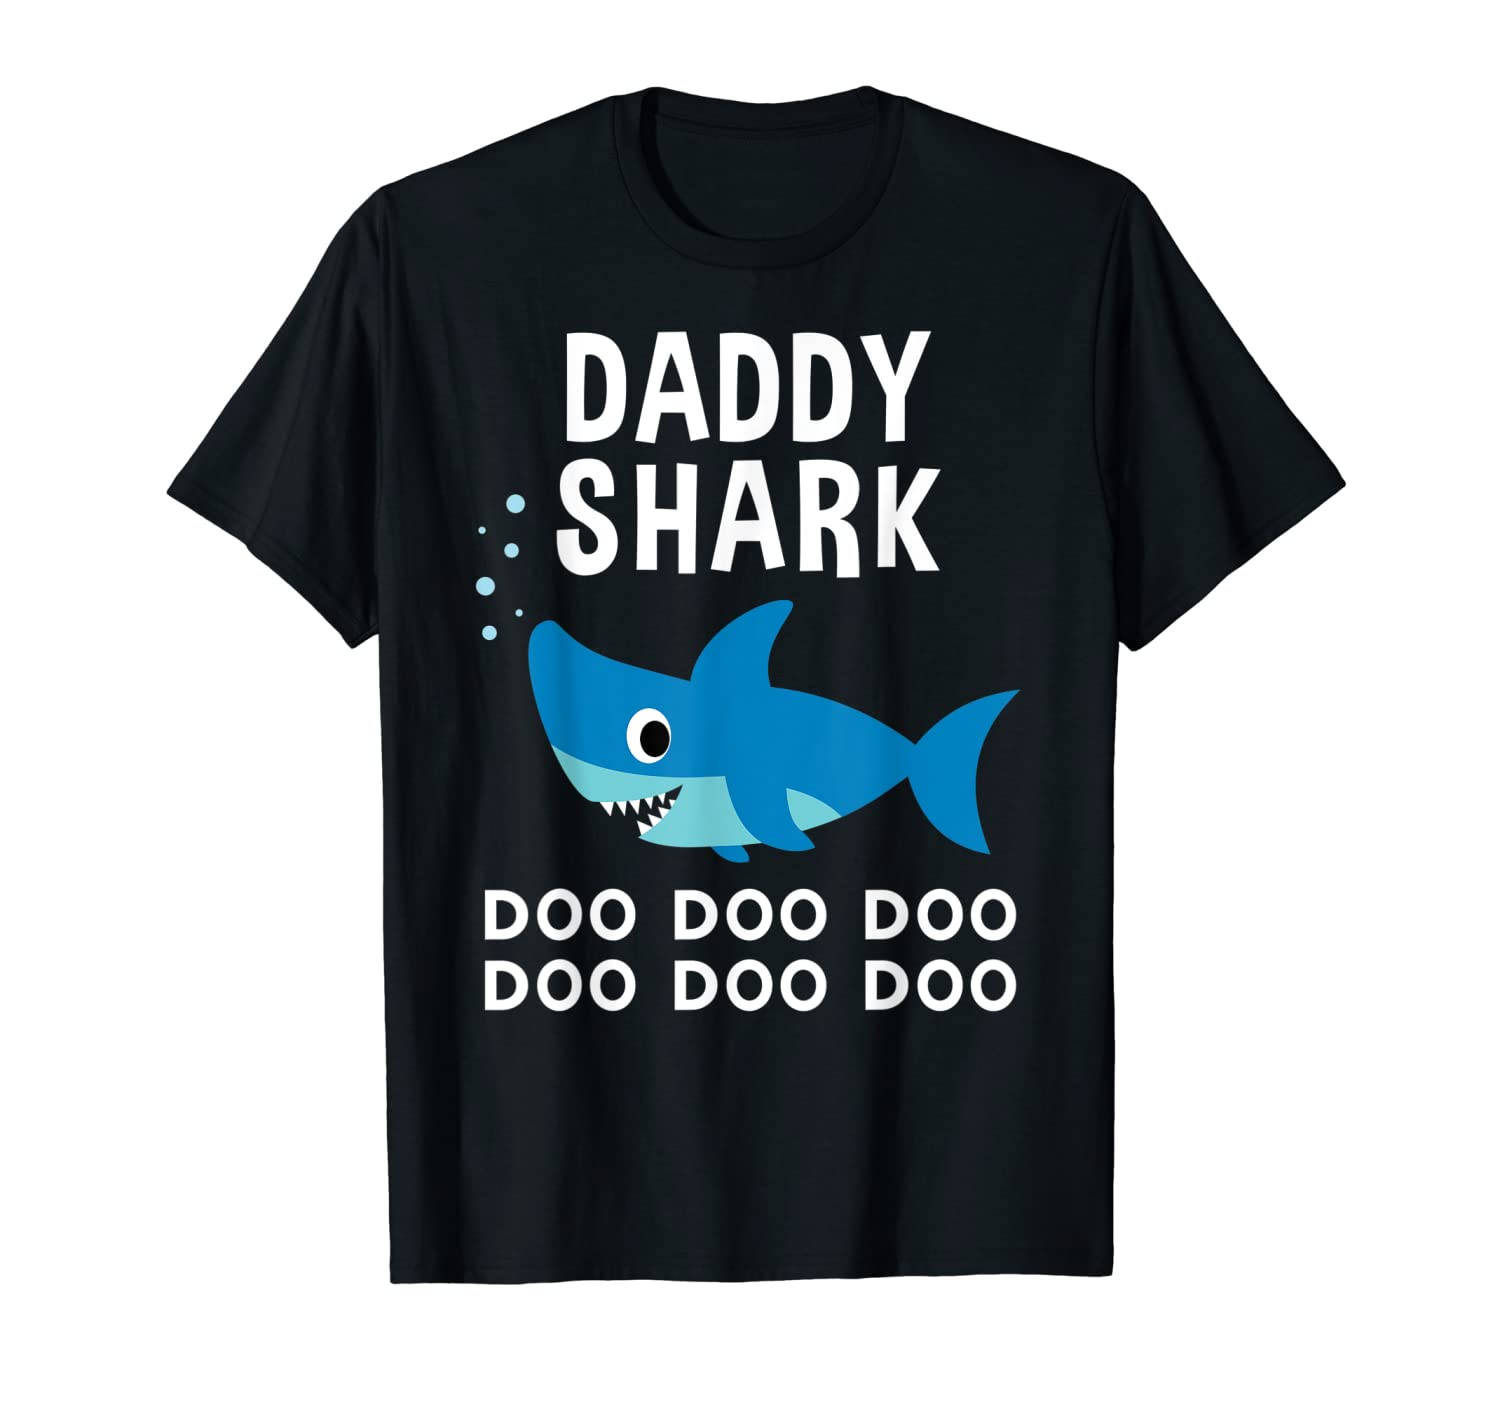 Daddy Shark Shirt Doo Doo Doo for Matching Family Pajamas